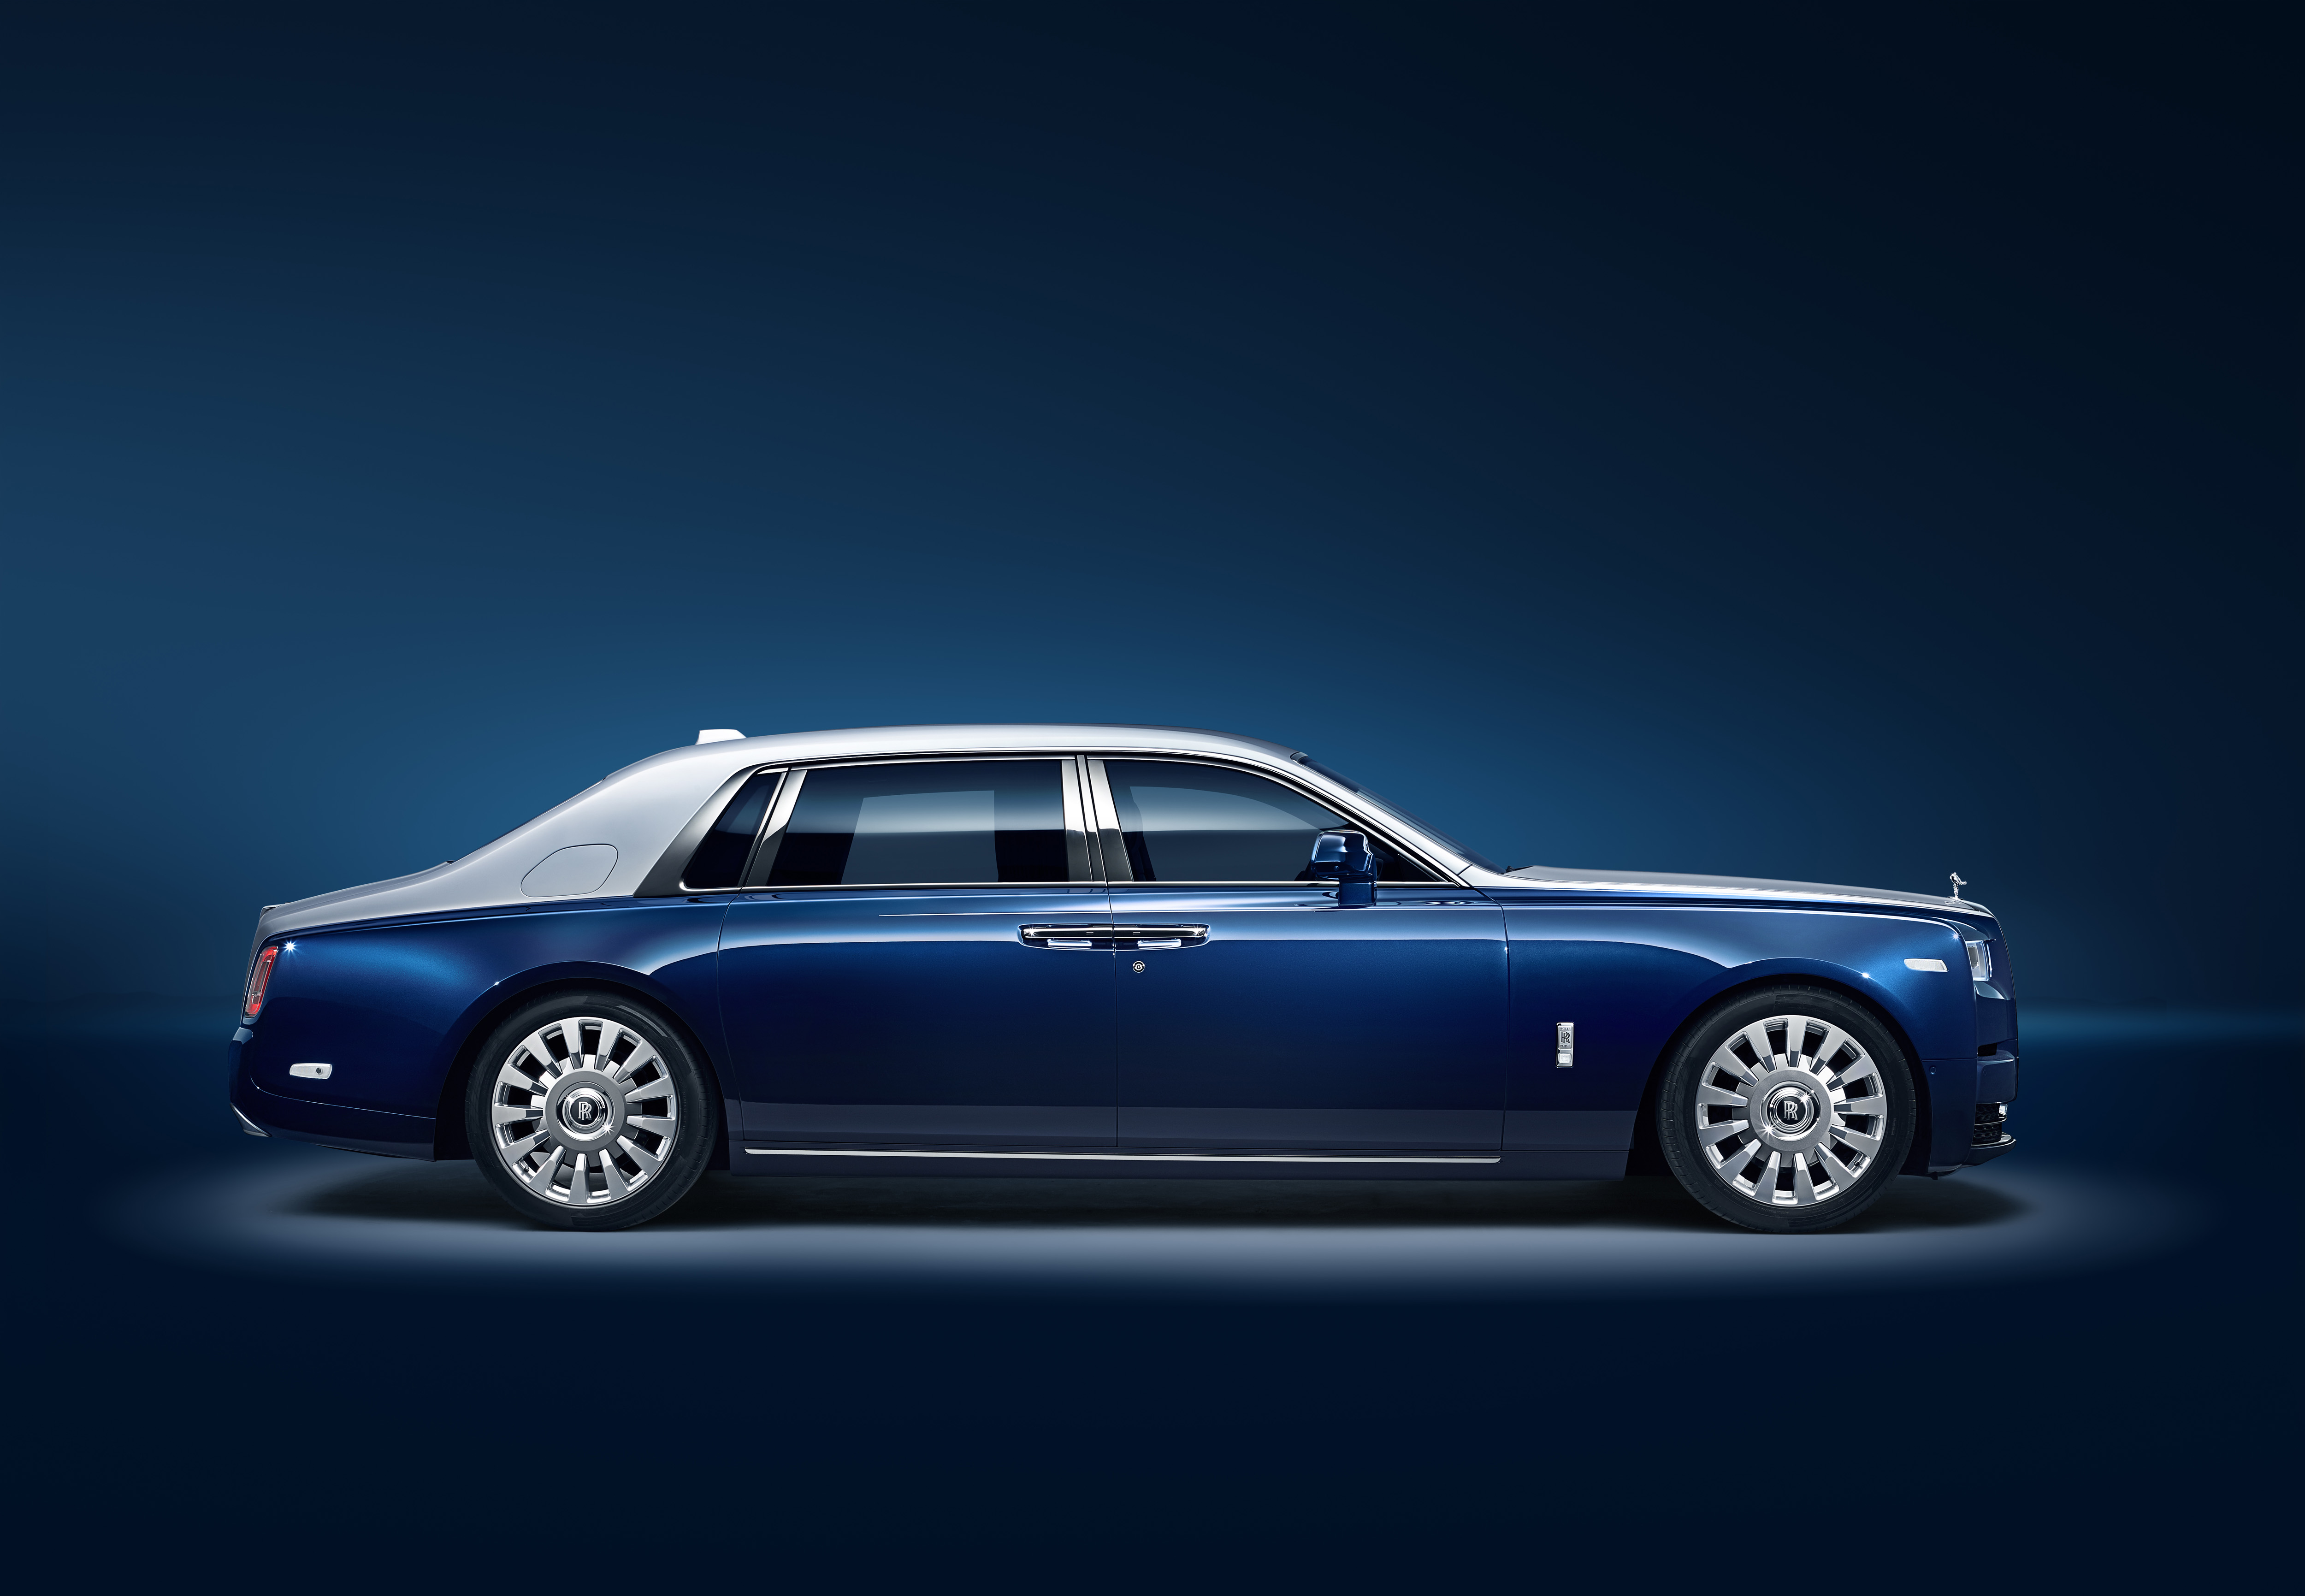 Rolls Royce Motor Cars Takes The Luxury Of Privacy To A New Level